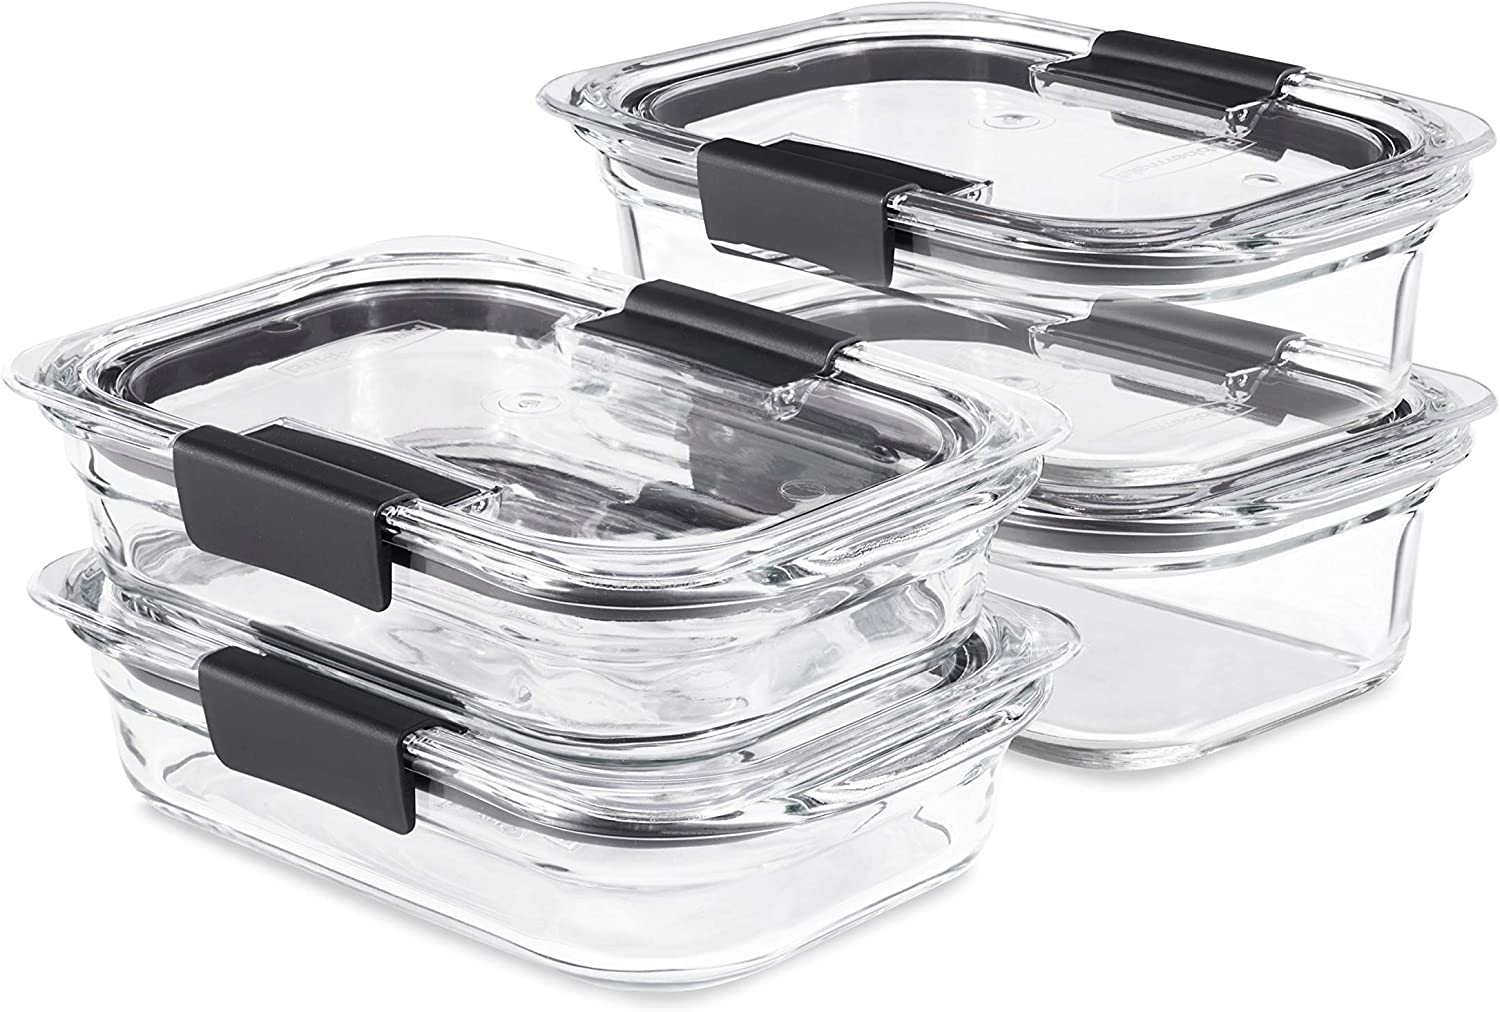 Rubbermaid Brilliance Glass Storage Set of 4 Food Containers with Lids (8 Pieces Total), BPA Free and Leak Proof, Medium, Clear